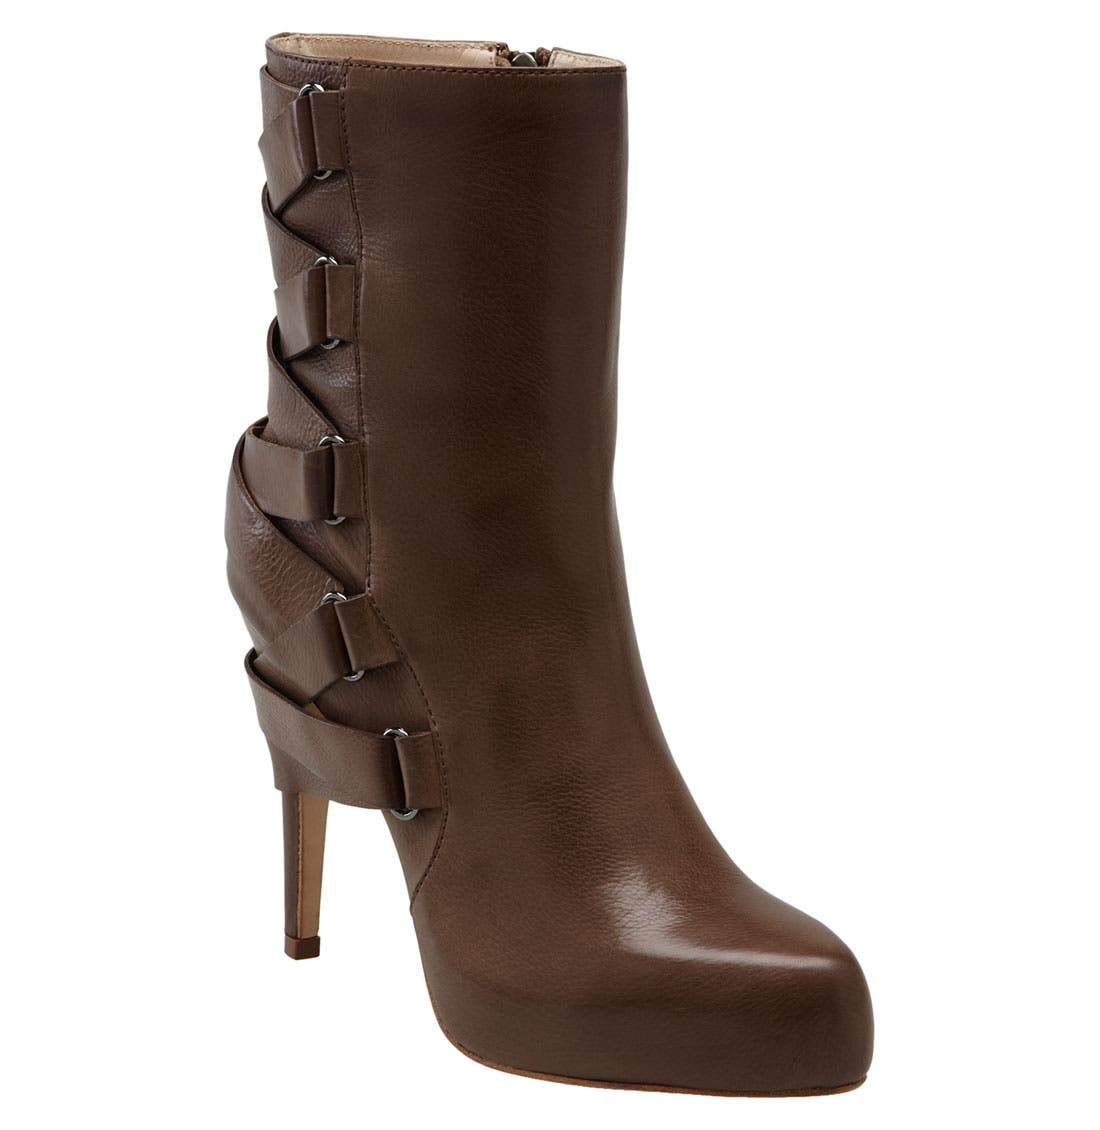 'Strut' Ankle Boot,                         Main,                         color, Brown